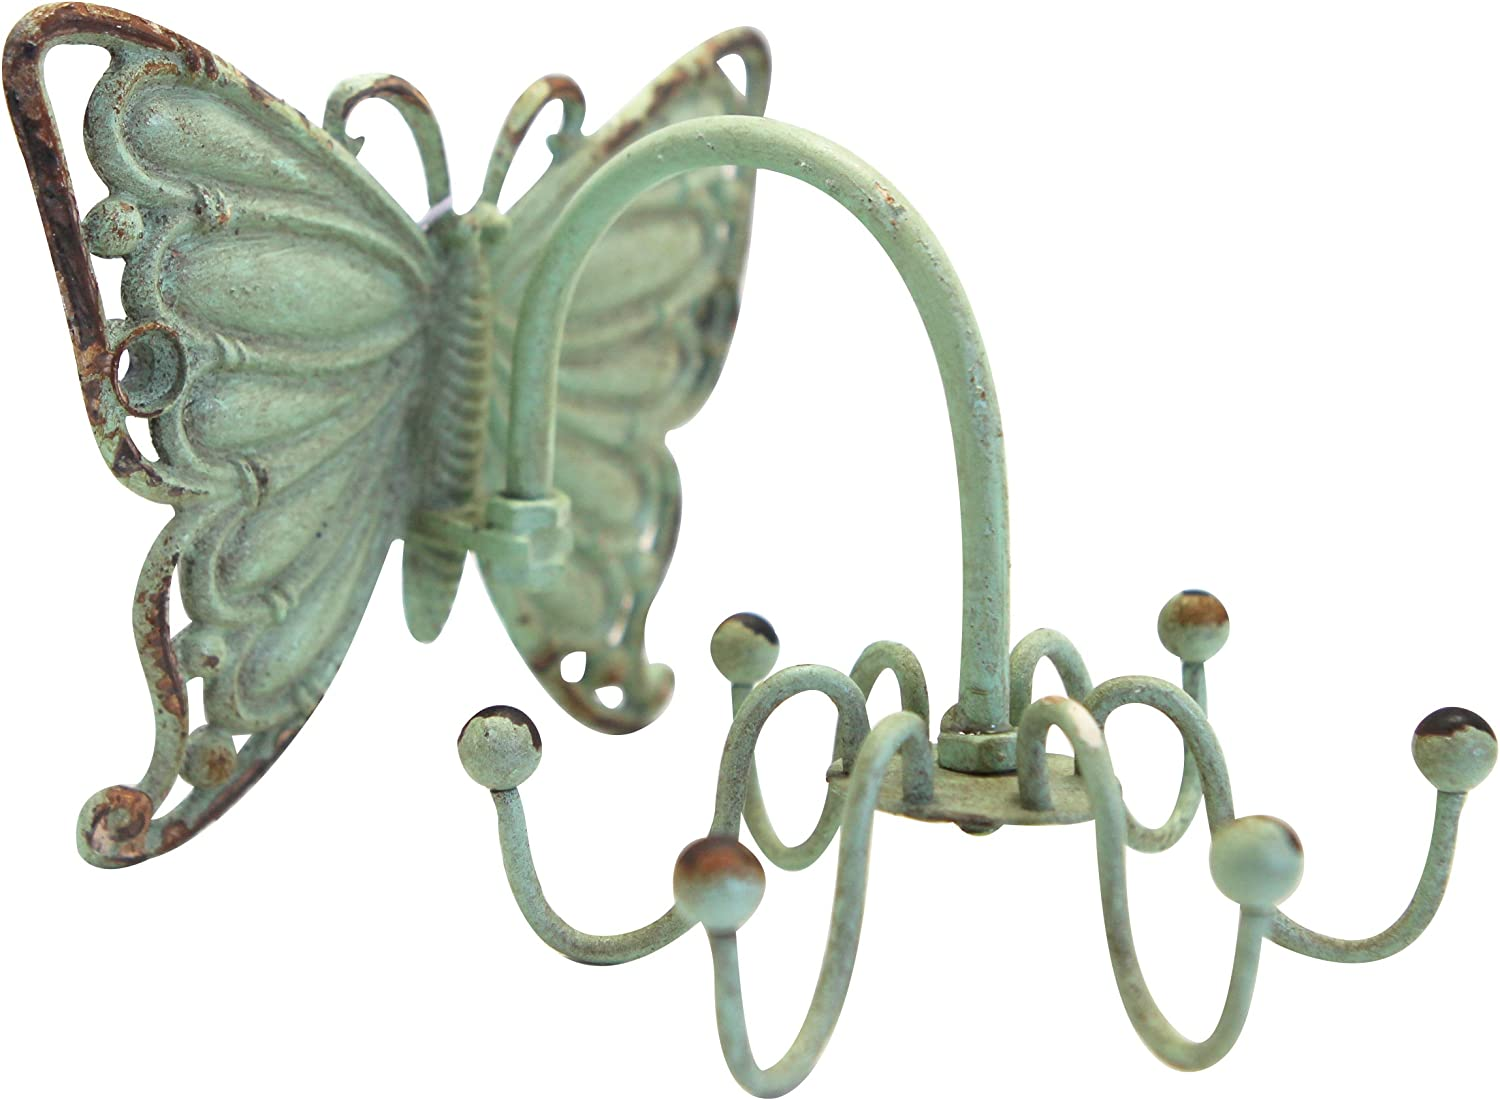 NIKKY HOME Shabby Chic Pewter Butterfly Shape Rotatable Jewelery Wall Necklace Hanger Hooks for Home Decor, Green